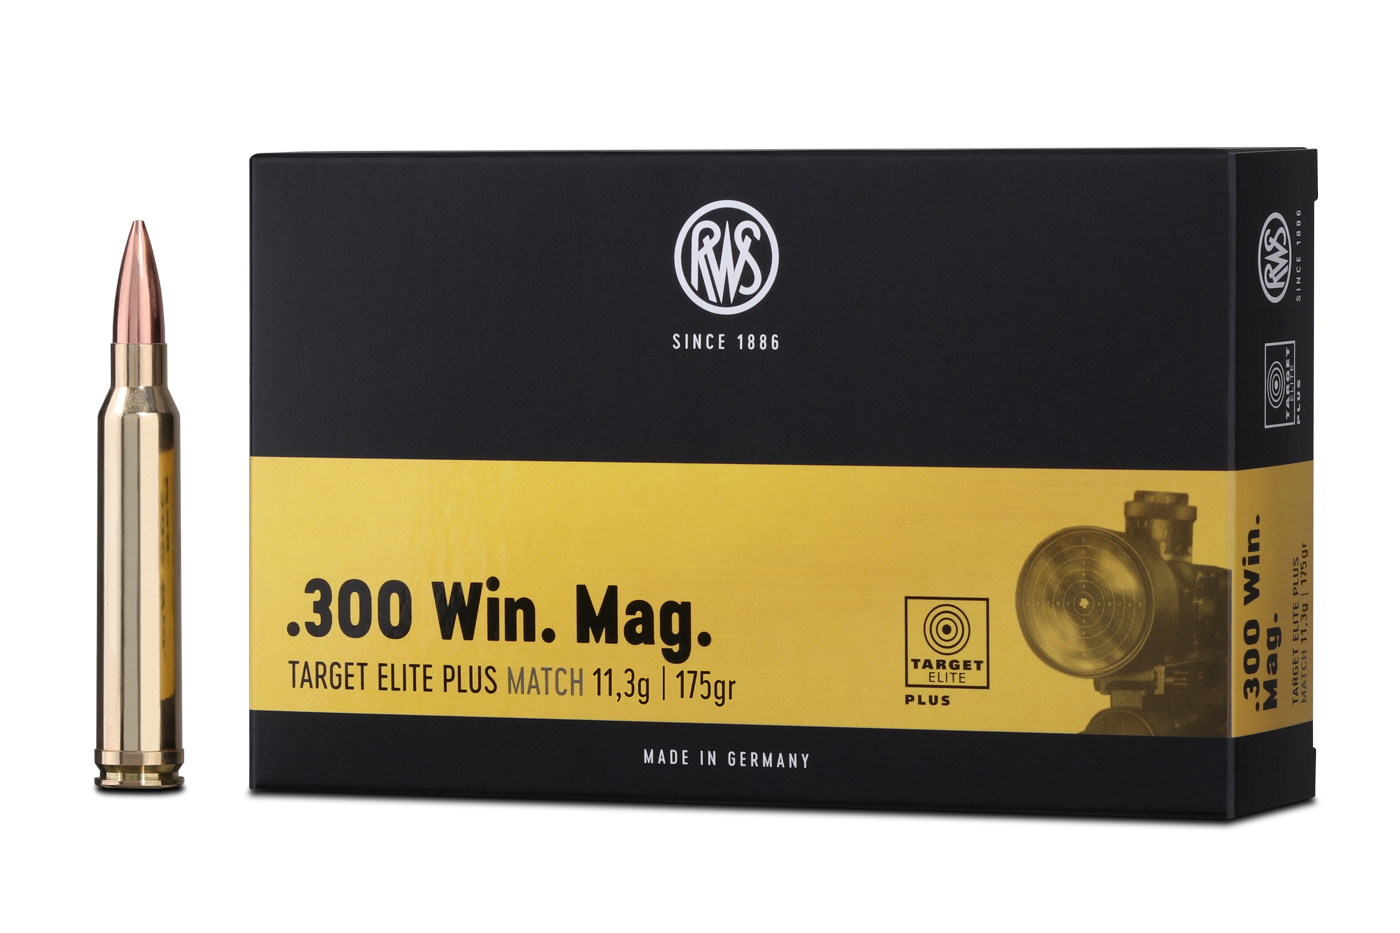 RWS TARGET ELITE PLUS in .300 Win. Mag.